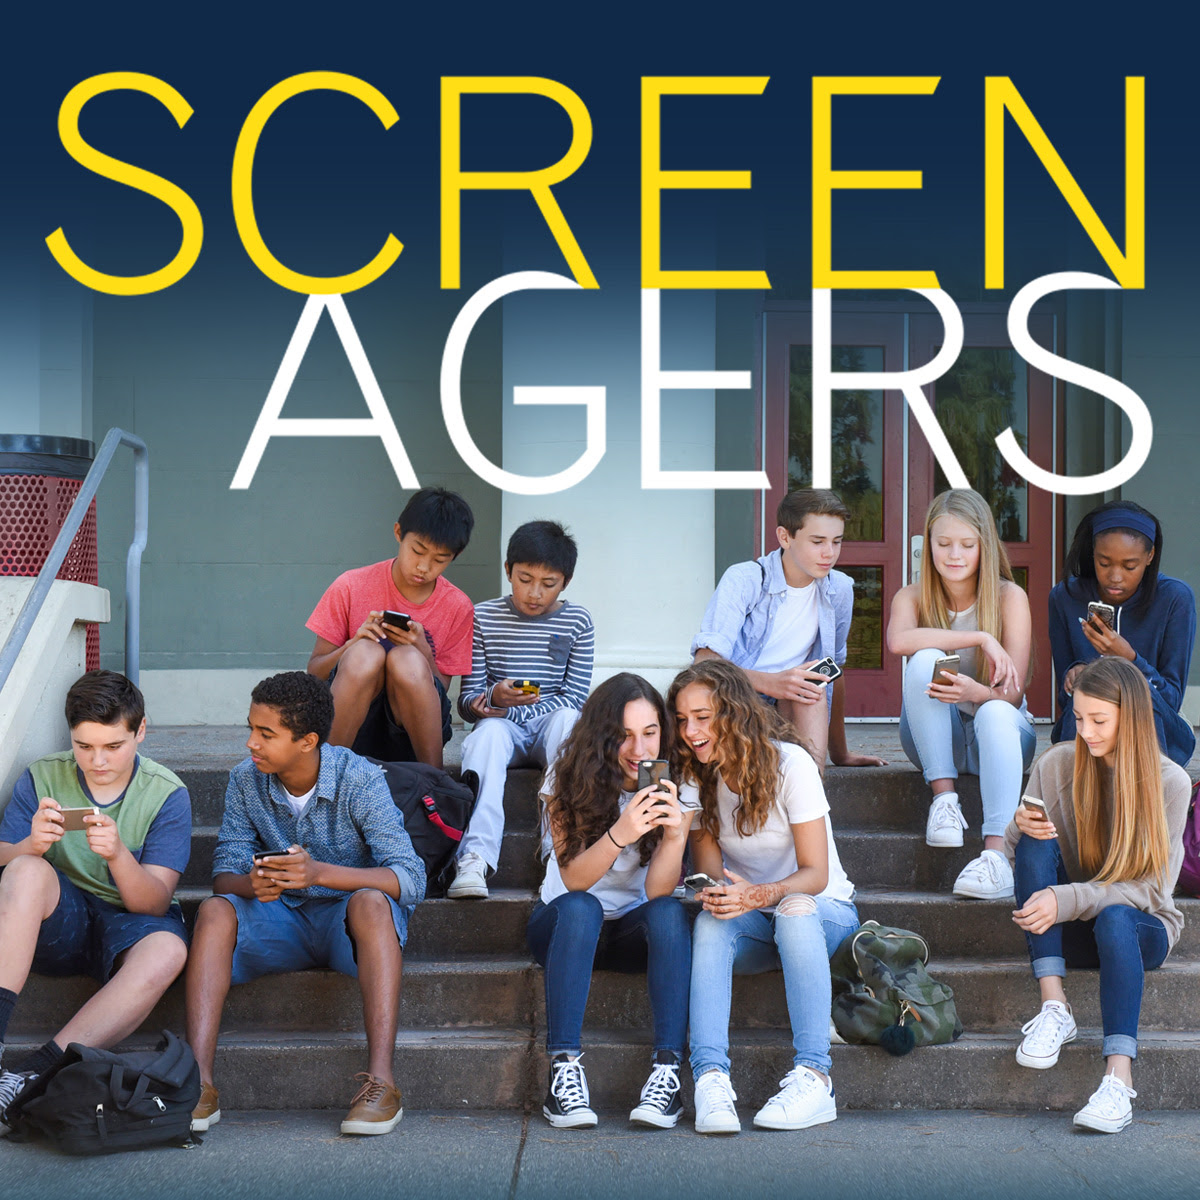 Screenagers Film Presented By Ellenville Public Library & Museum and Ellenville Wawarsing Youth Commission